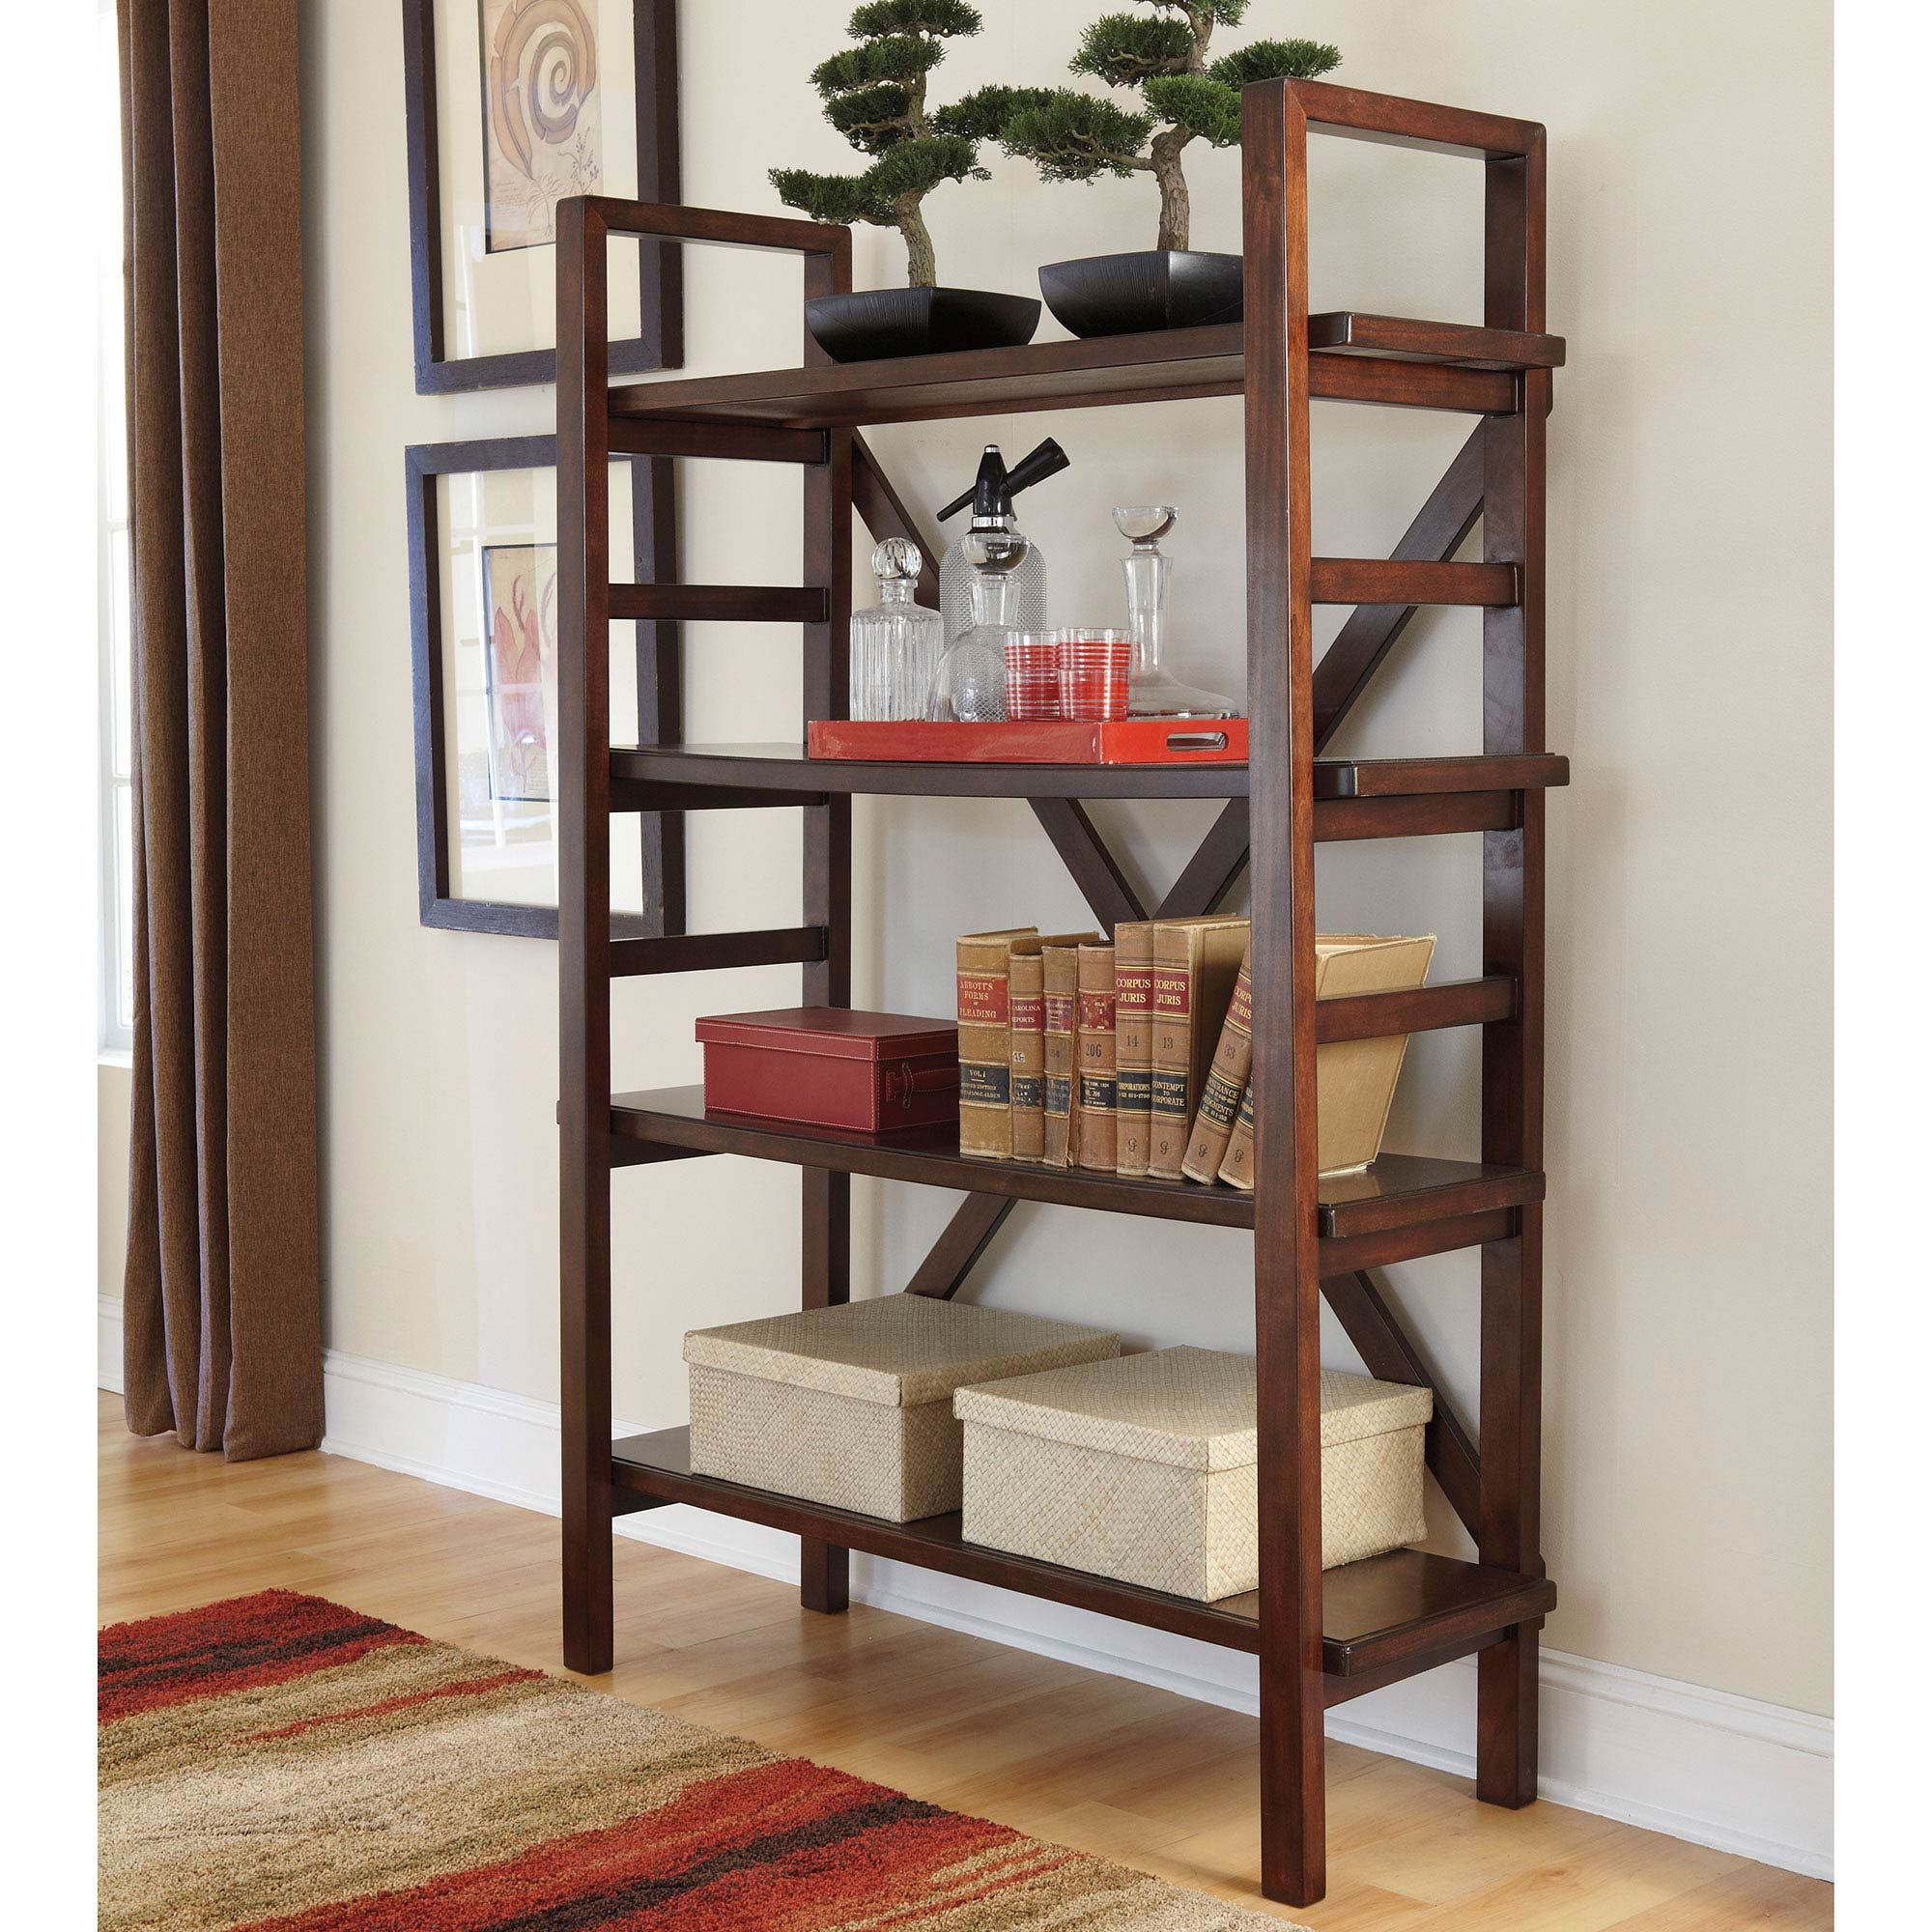 Exchange Online Store H131 Product Hindell Park Bookcase Ashley Furniture Open Bookcase Bookcase